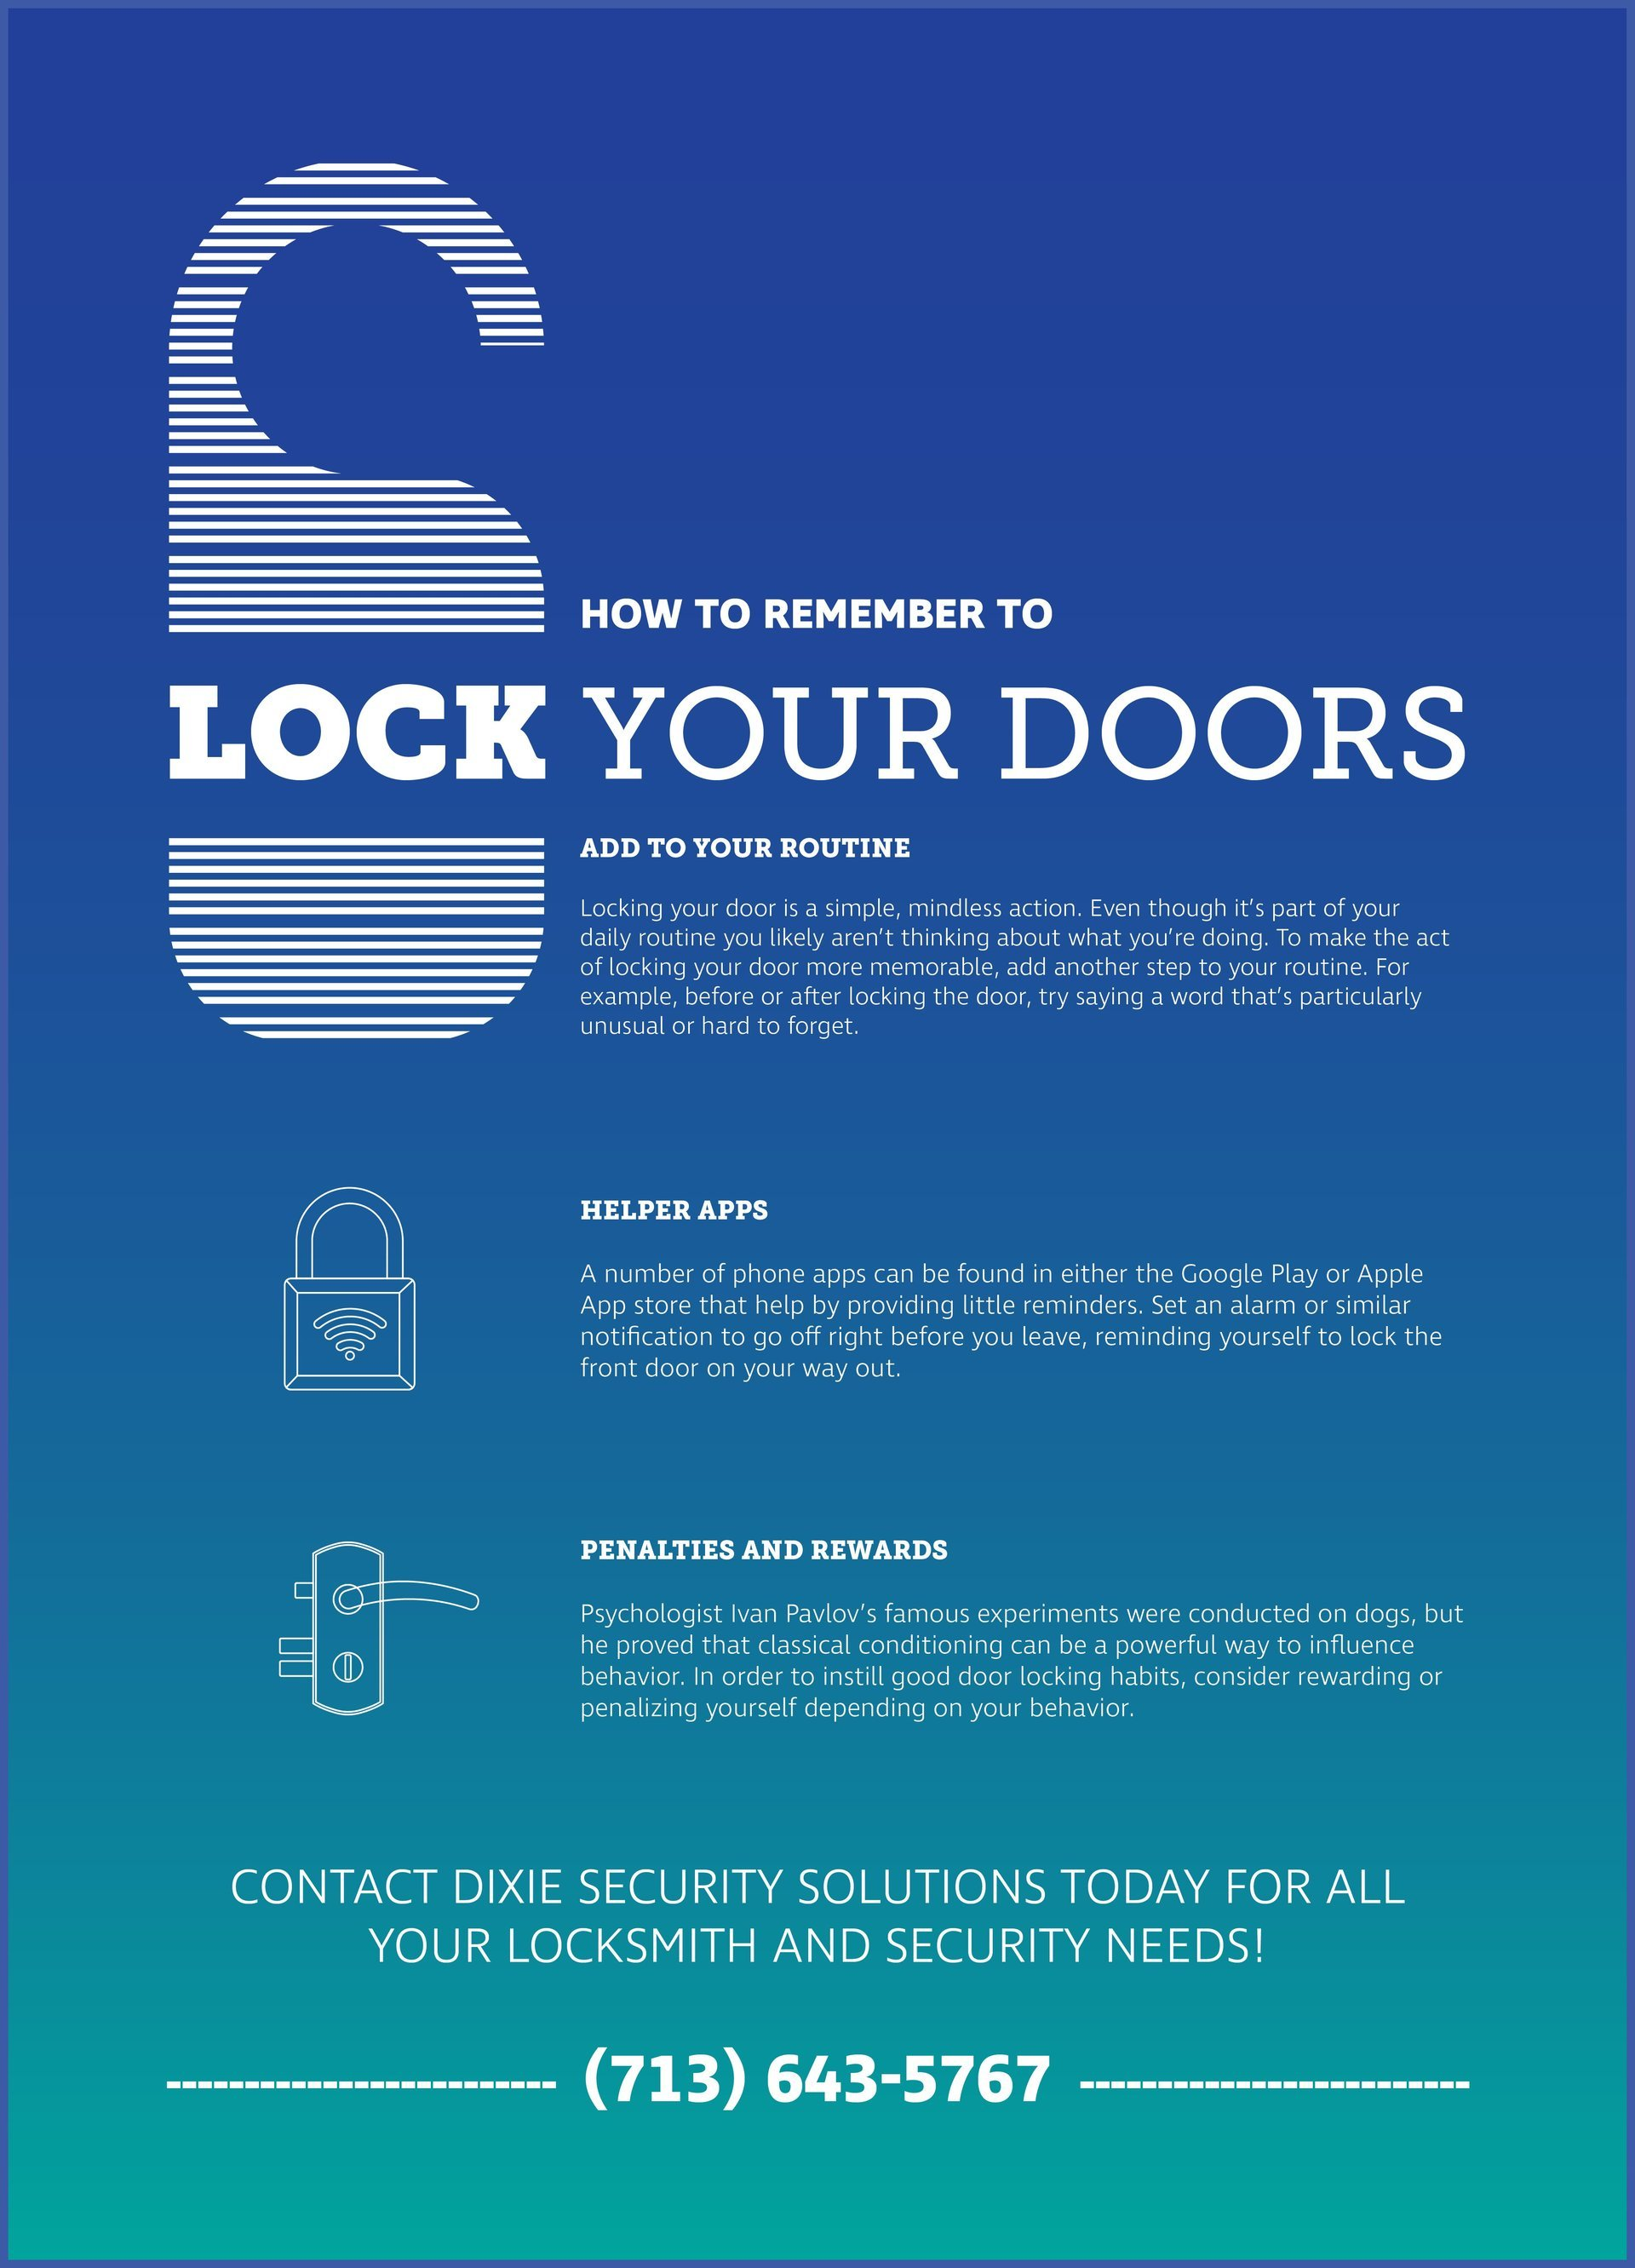 how to remember to lock your doors infographic